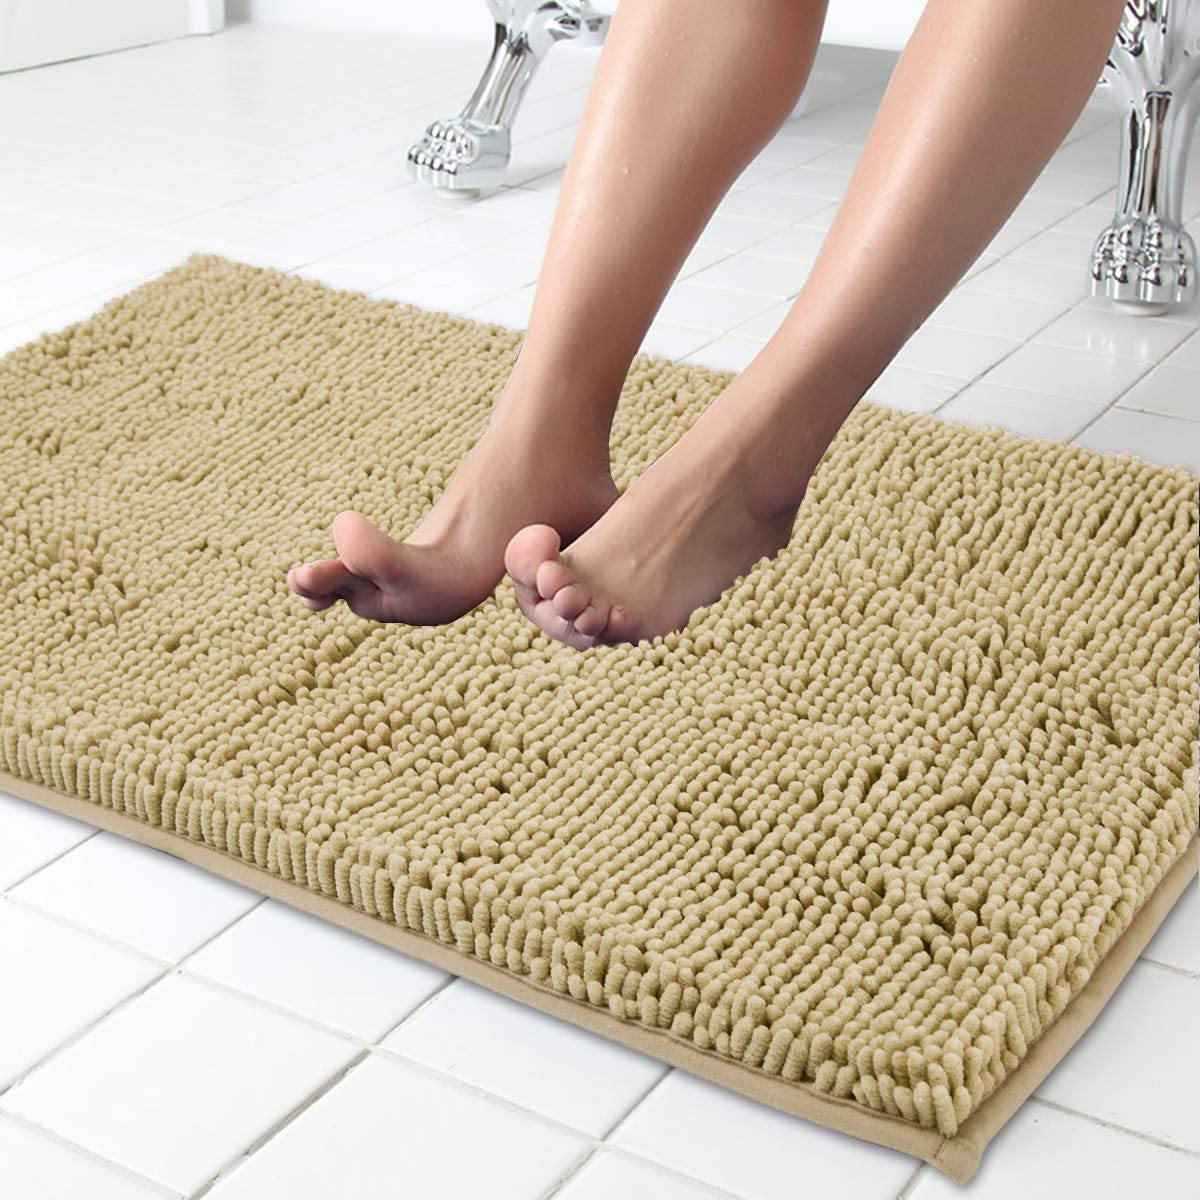 Itsoft Non Slip Shaggy Chenille Bath Mat Soft Microfibers Bathroom Rug With Water Absorbent Machine Washable 53x87 Cm Beige Amazon Co Uk Kitchen Home